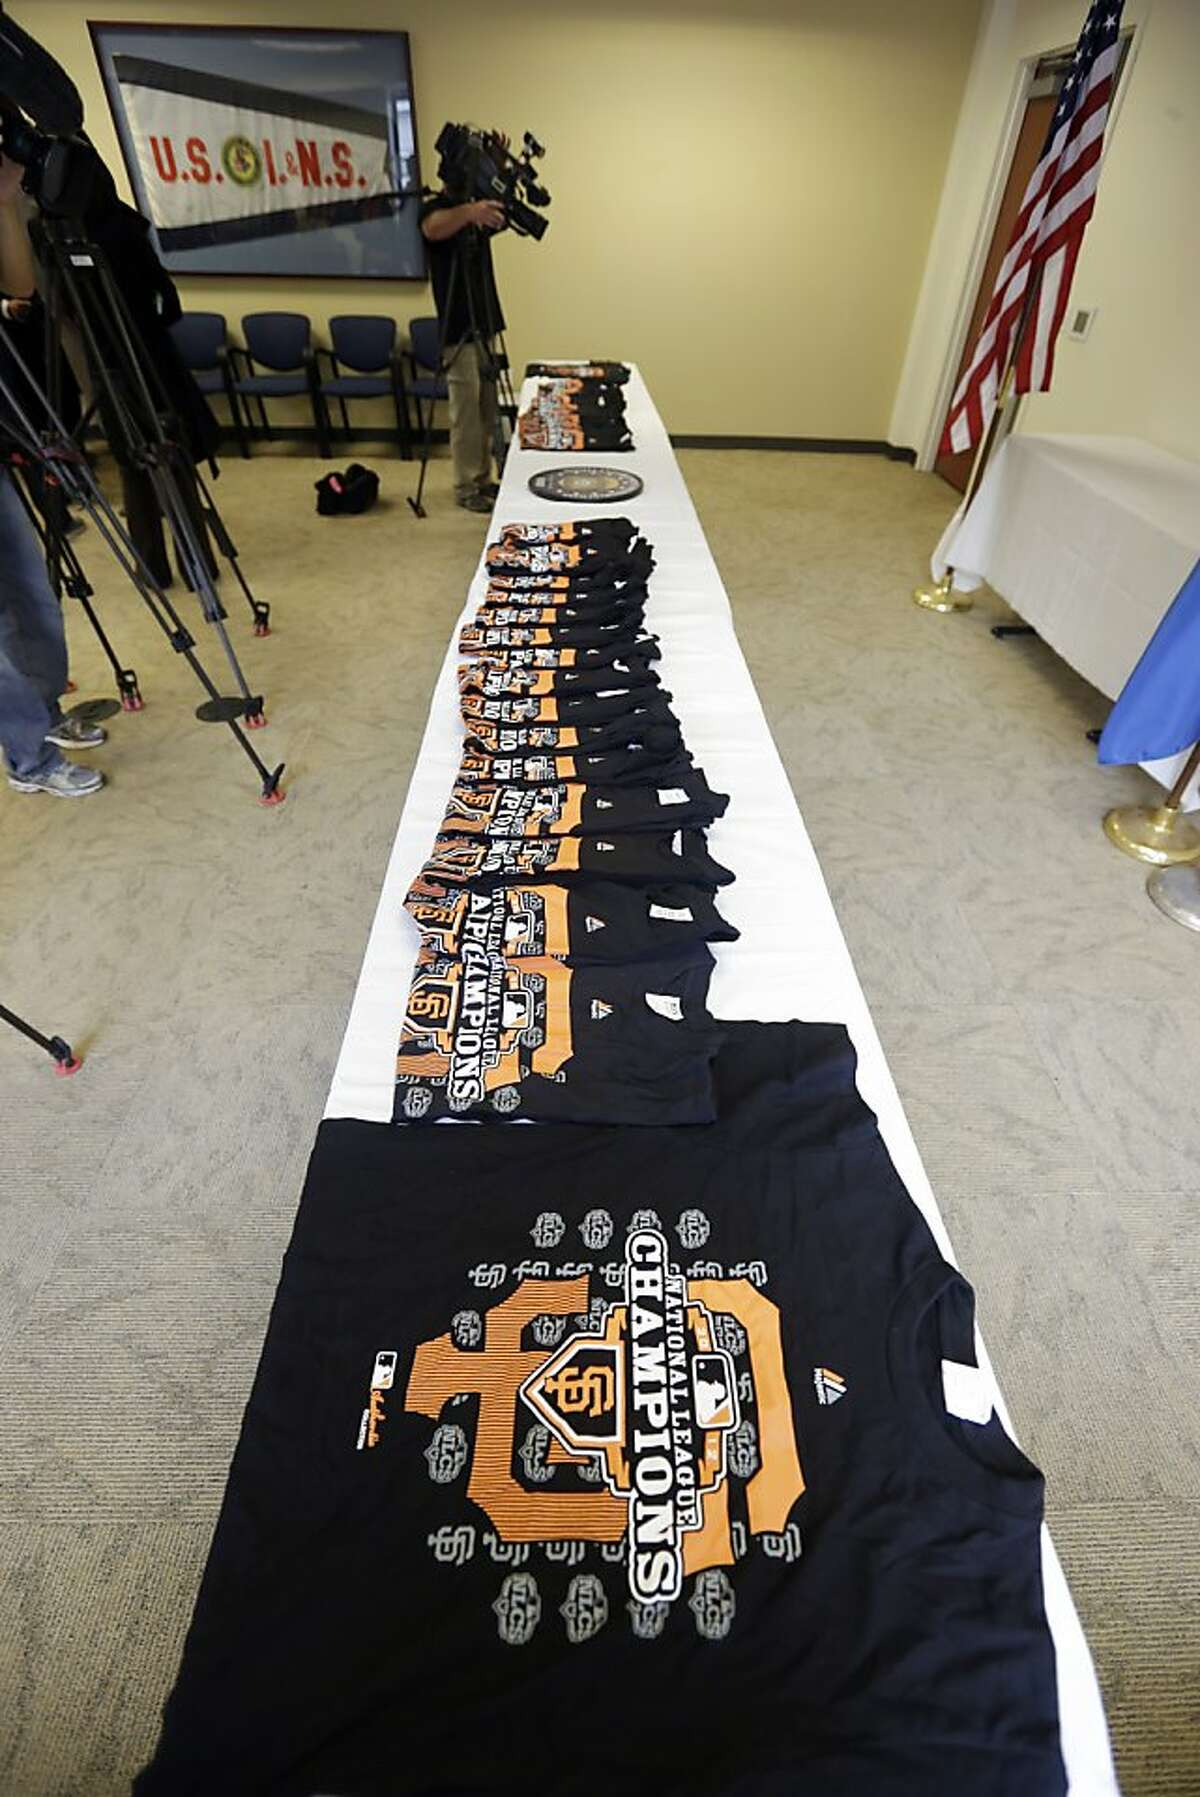 Counterfeit San Francisco Giants T-shirts are displayed in San Francisco, Monday, Oct. 29, 2012. Agents with the U.S. Department of Homeland Security seized nearly 1,200 items of counterfeit MLB clothing being offered for sale by vendors on San Francisco streets. The merchandise included more than 1,000 phony T-shirts, along with counterfeit baseball hats and knit caps. The department estimated the value of the goods, if they were genuine, at $25,000. (AP Photo/Marcio Jose Sanchez)